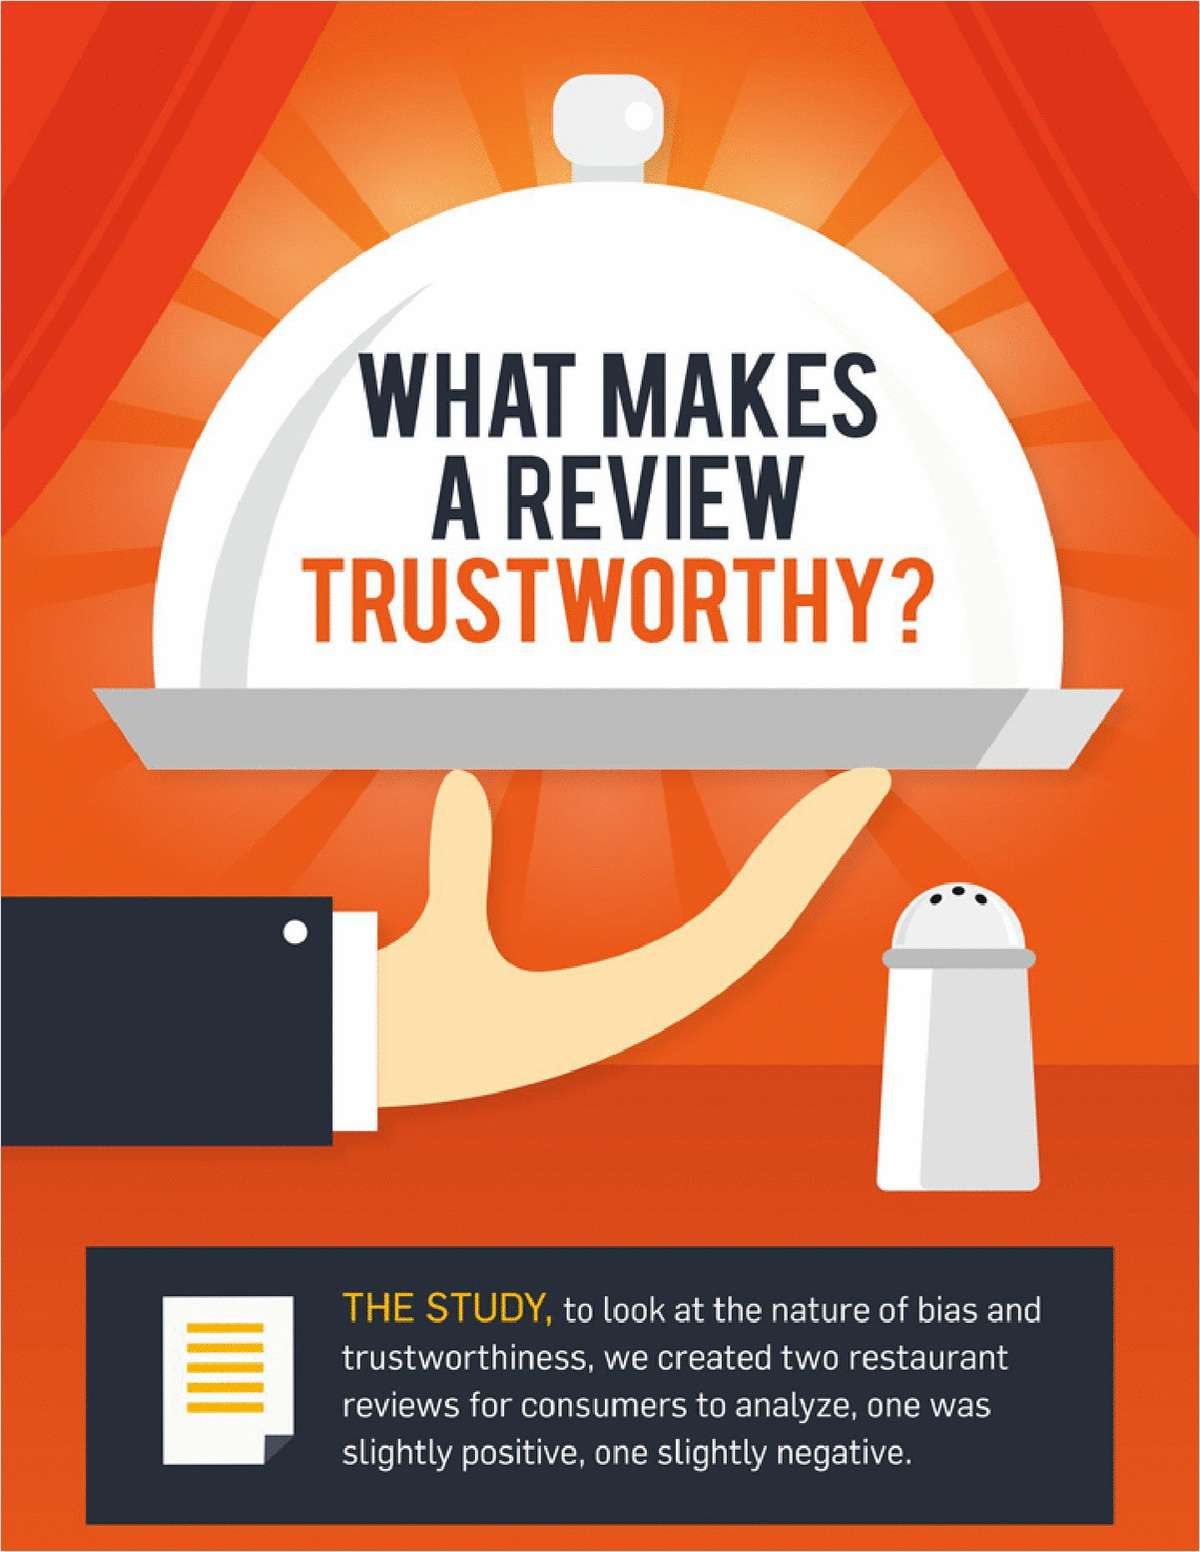 What Makes A Review Trustworthy?